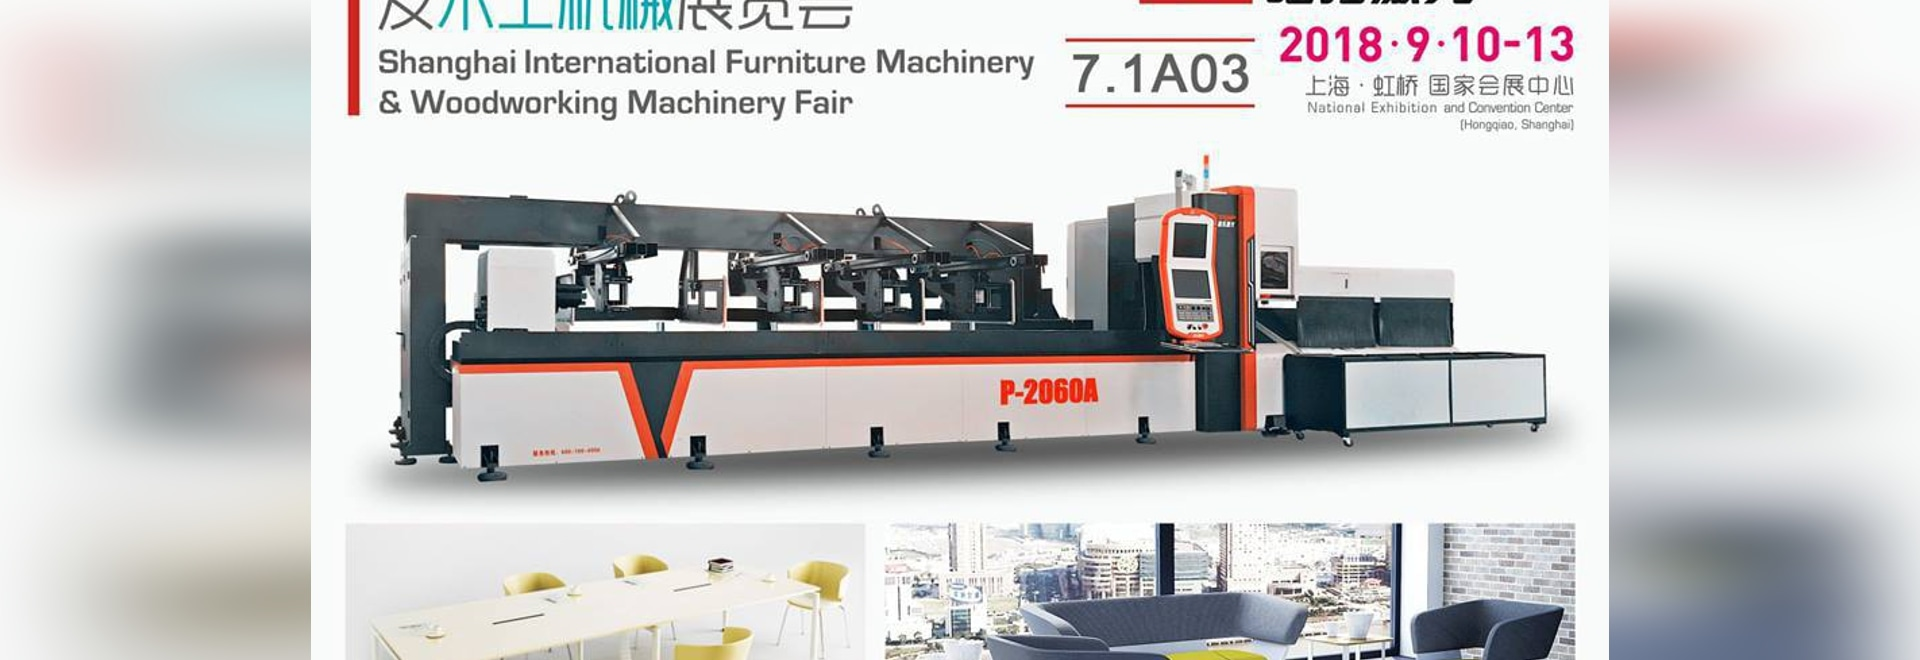 Welcome to Shanghai International Furniture Machinery & Woodworking Machinery Fair from 9/10/2018-9/13/2018